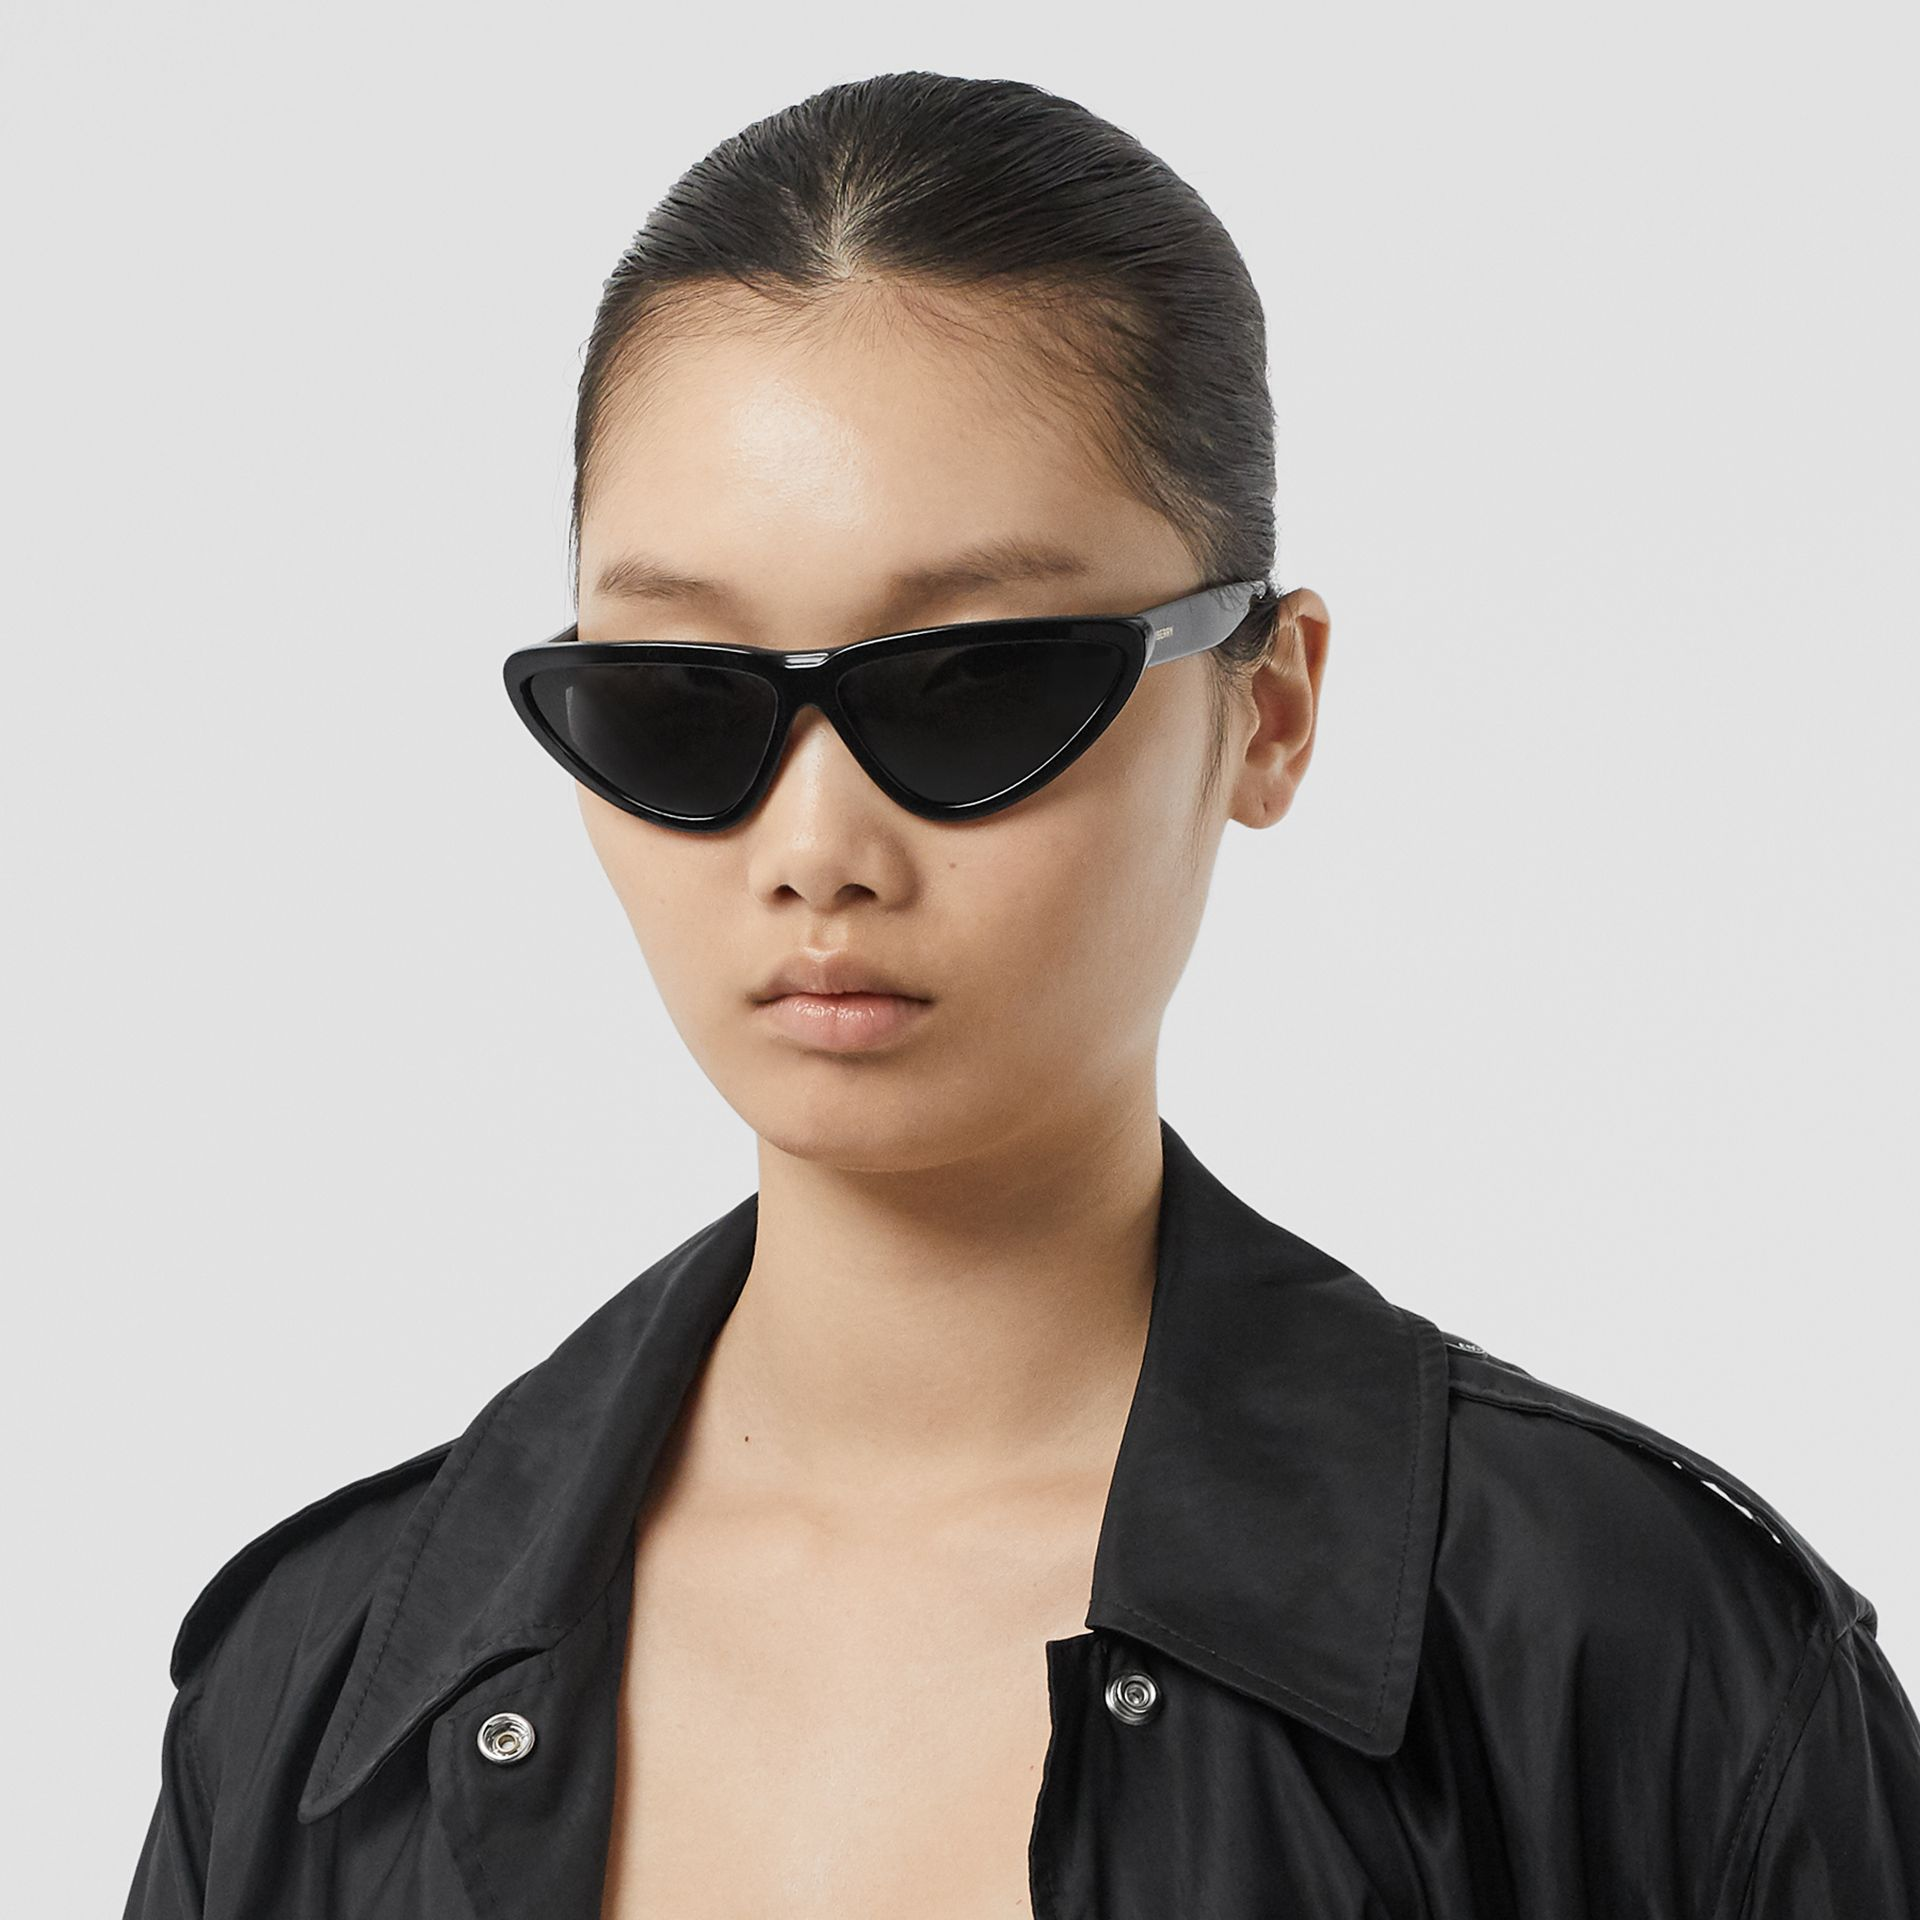 Triangular Frame Sunglasses in Black - Women | Burberry Australia - gallery image 2